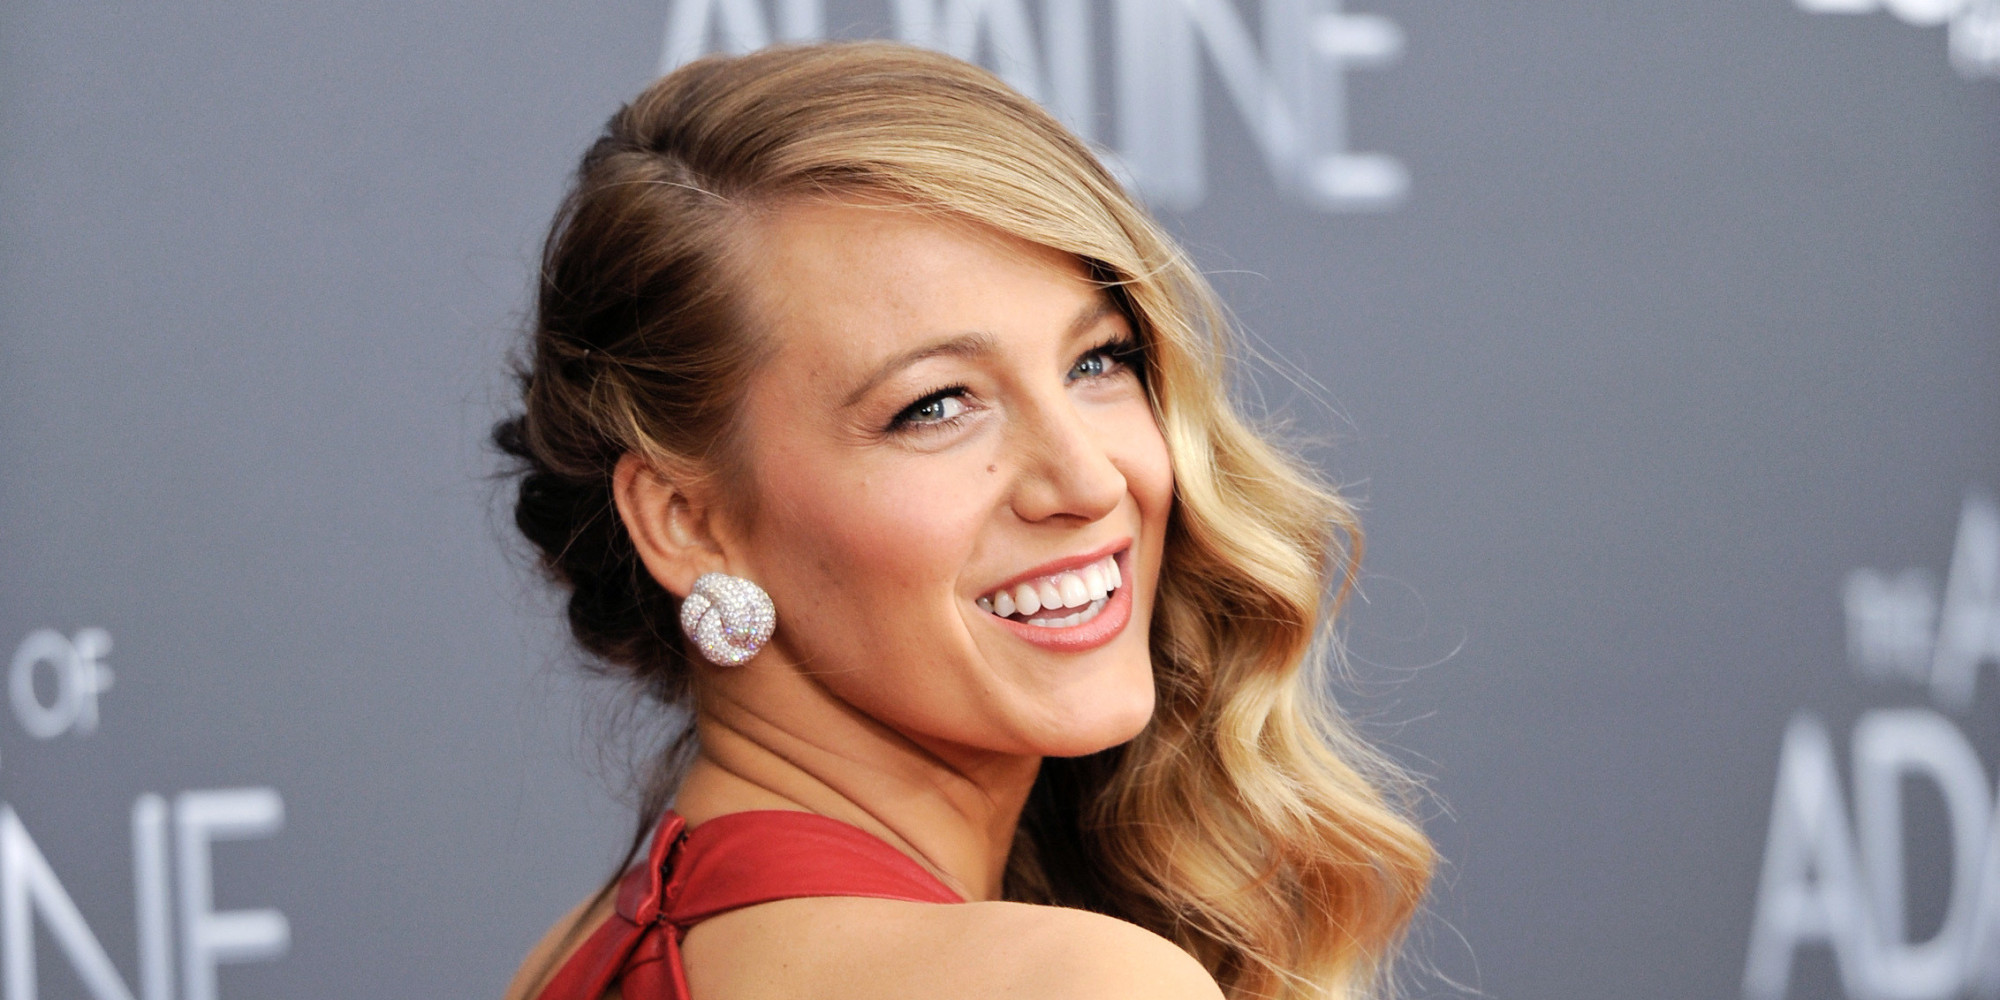 Blake Lively Instagram: Actress Proves She's A ... Blake Lively Facebook